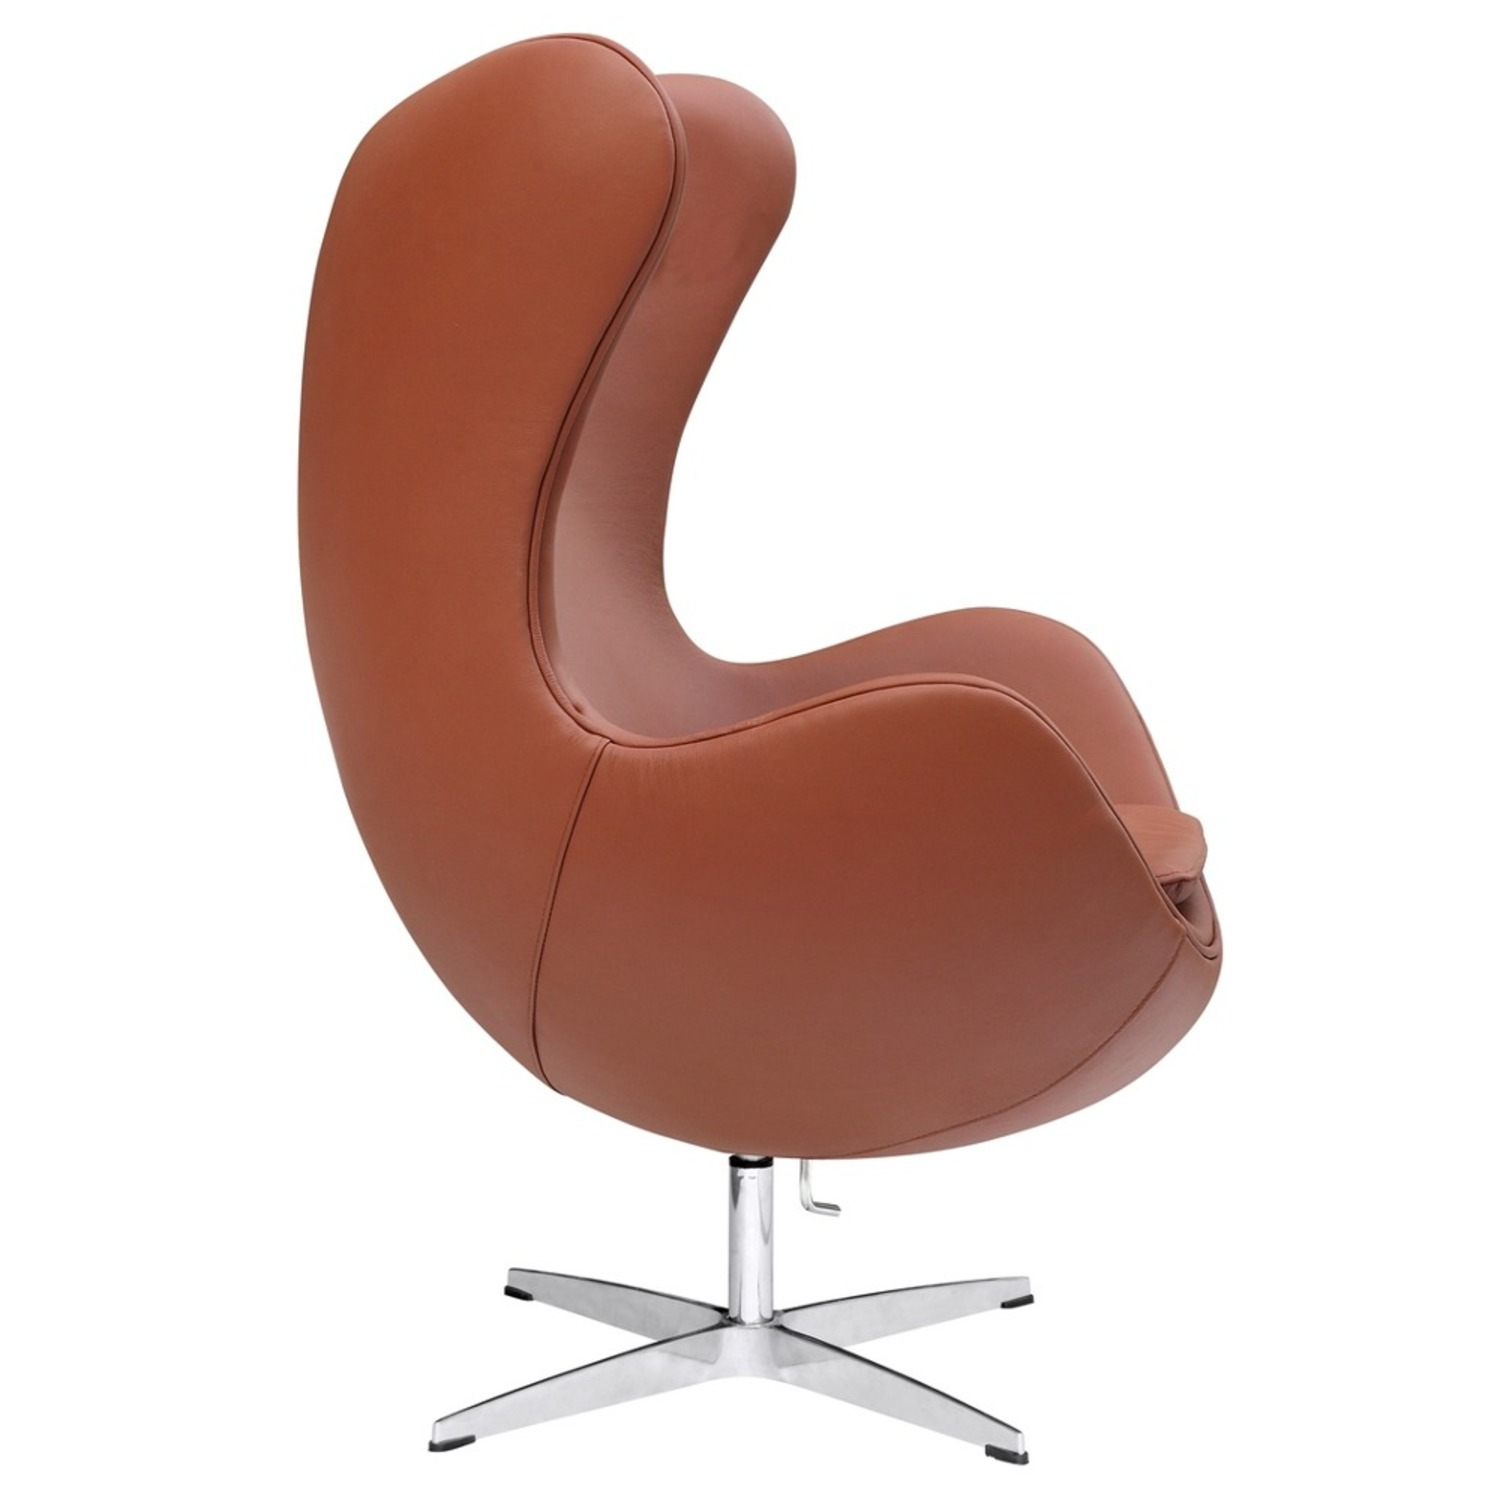 Inner Chair In Light Brown Leather - image-1